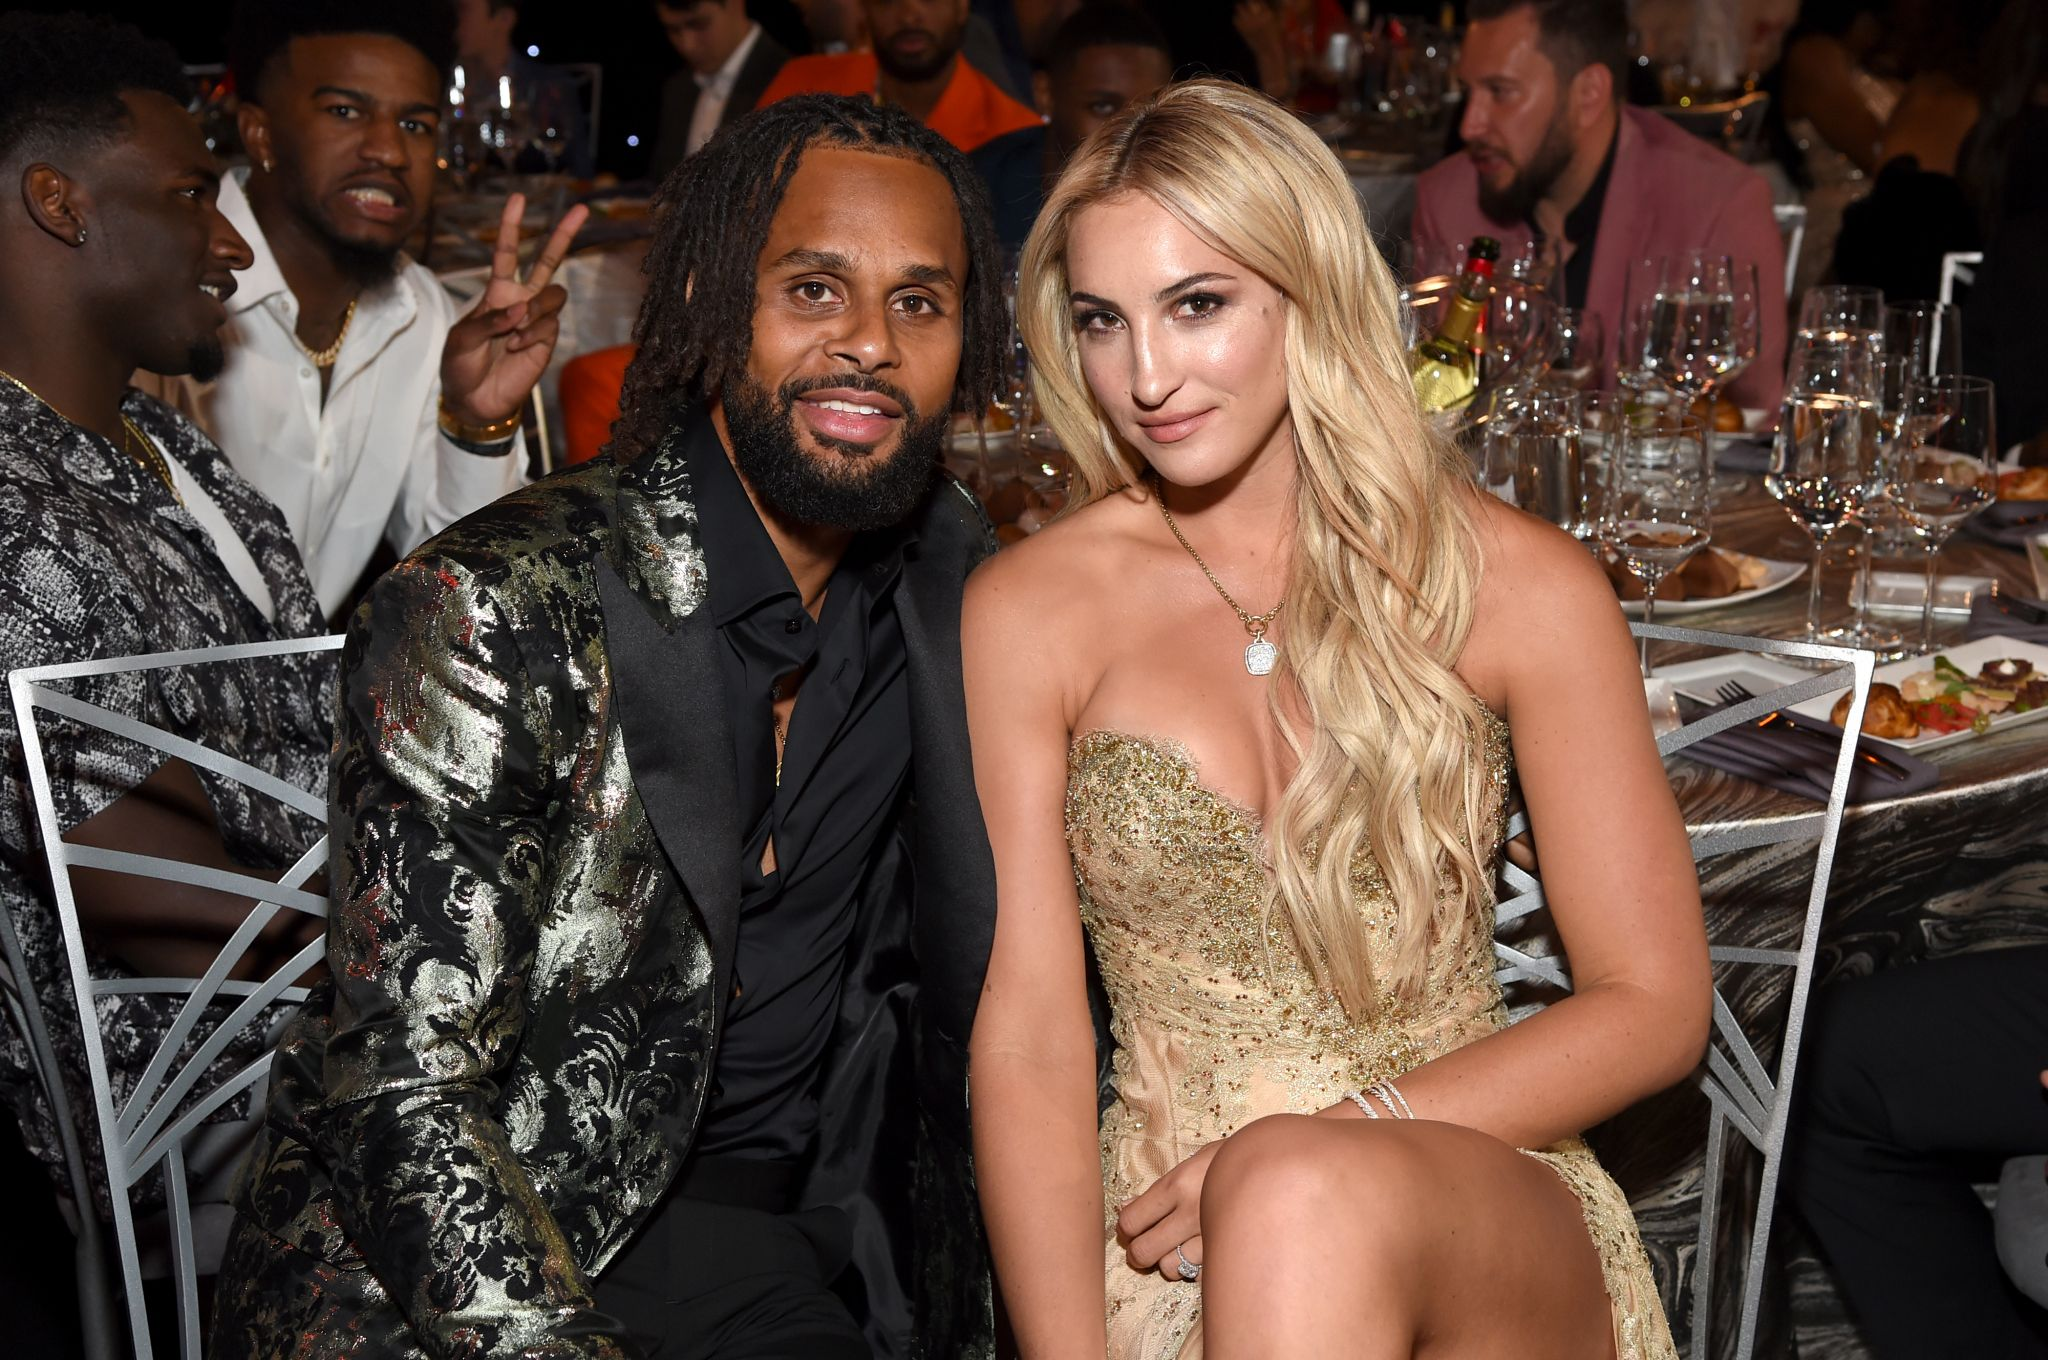 Spurs' Patty Mills corrects 'dufus' meme page after wife Alyssa is called a 'hot chick from Bondi'